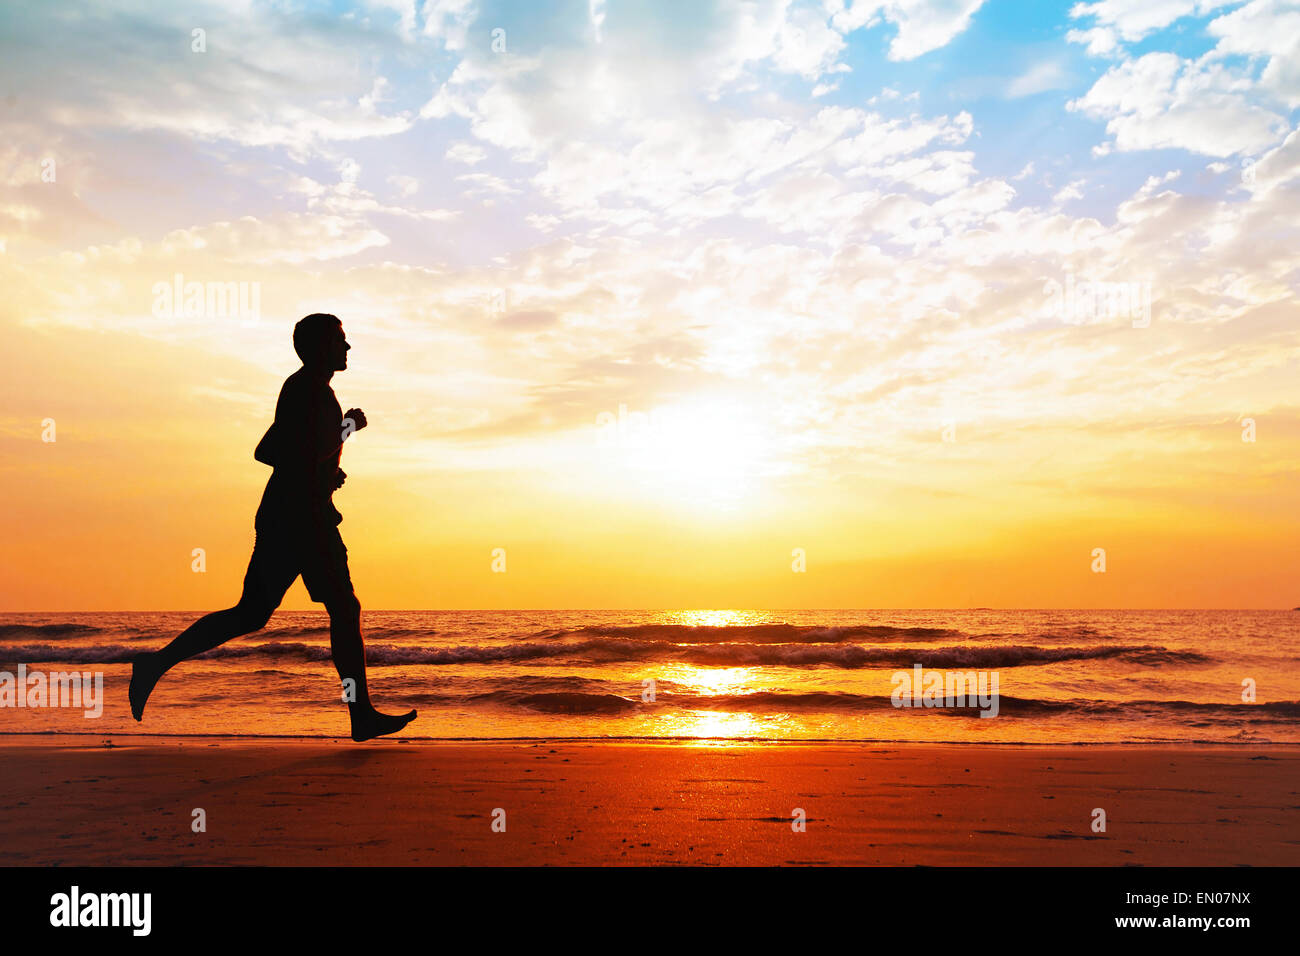 active healthy lifestyle, silhouette of man jogging on the beach - Stock Image